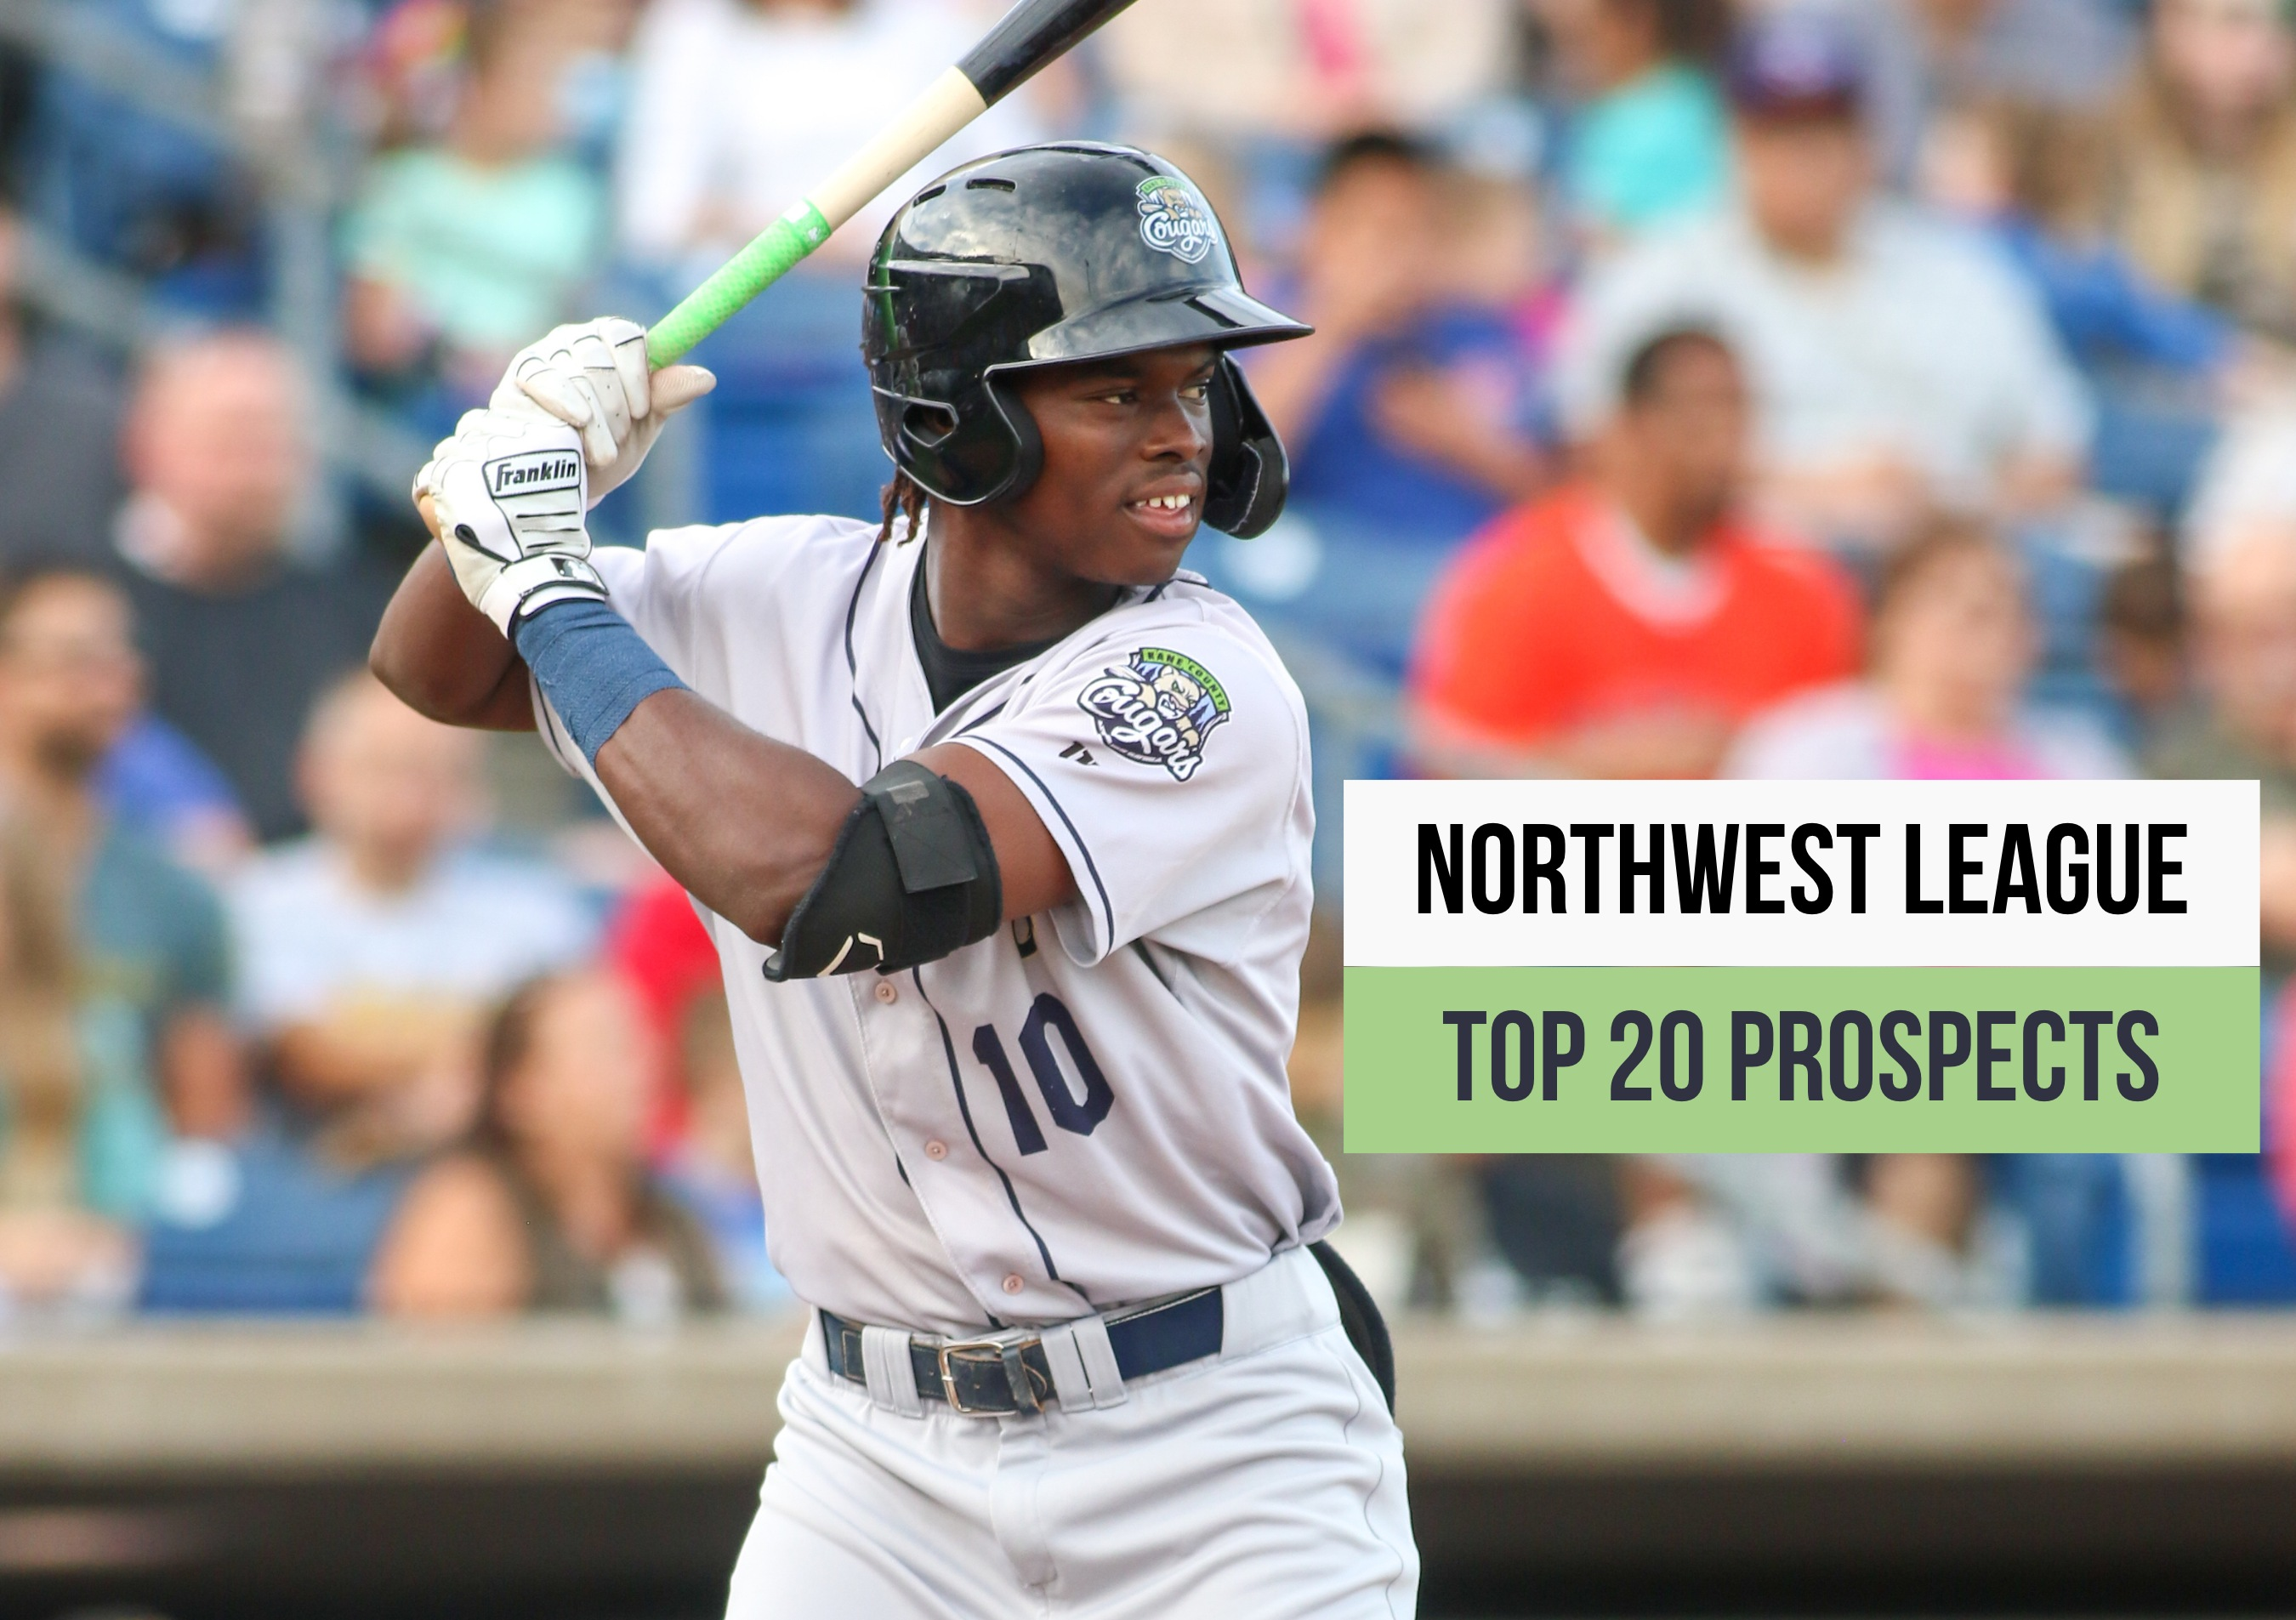 Northwest League Top 20 Prospects For 2019